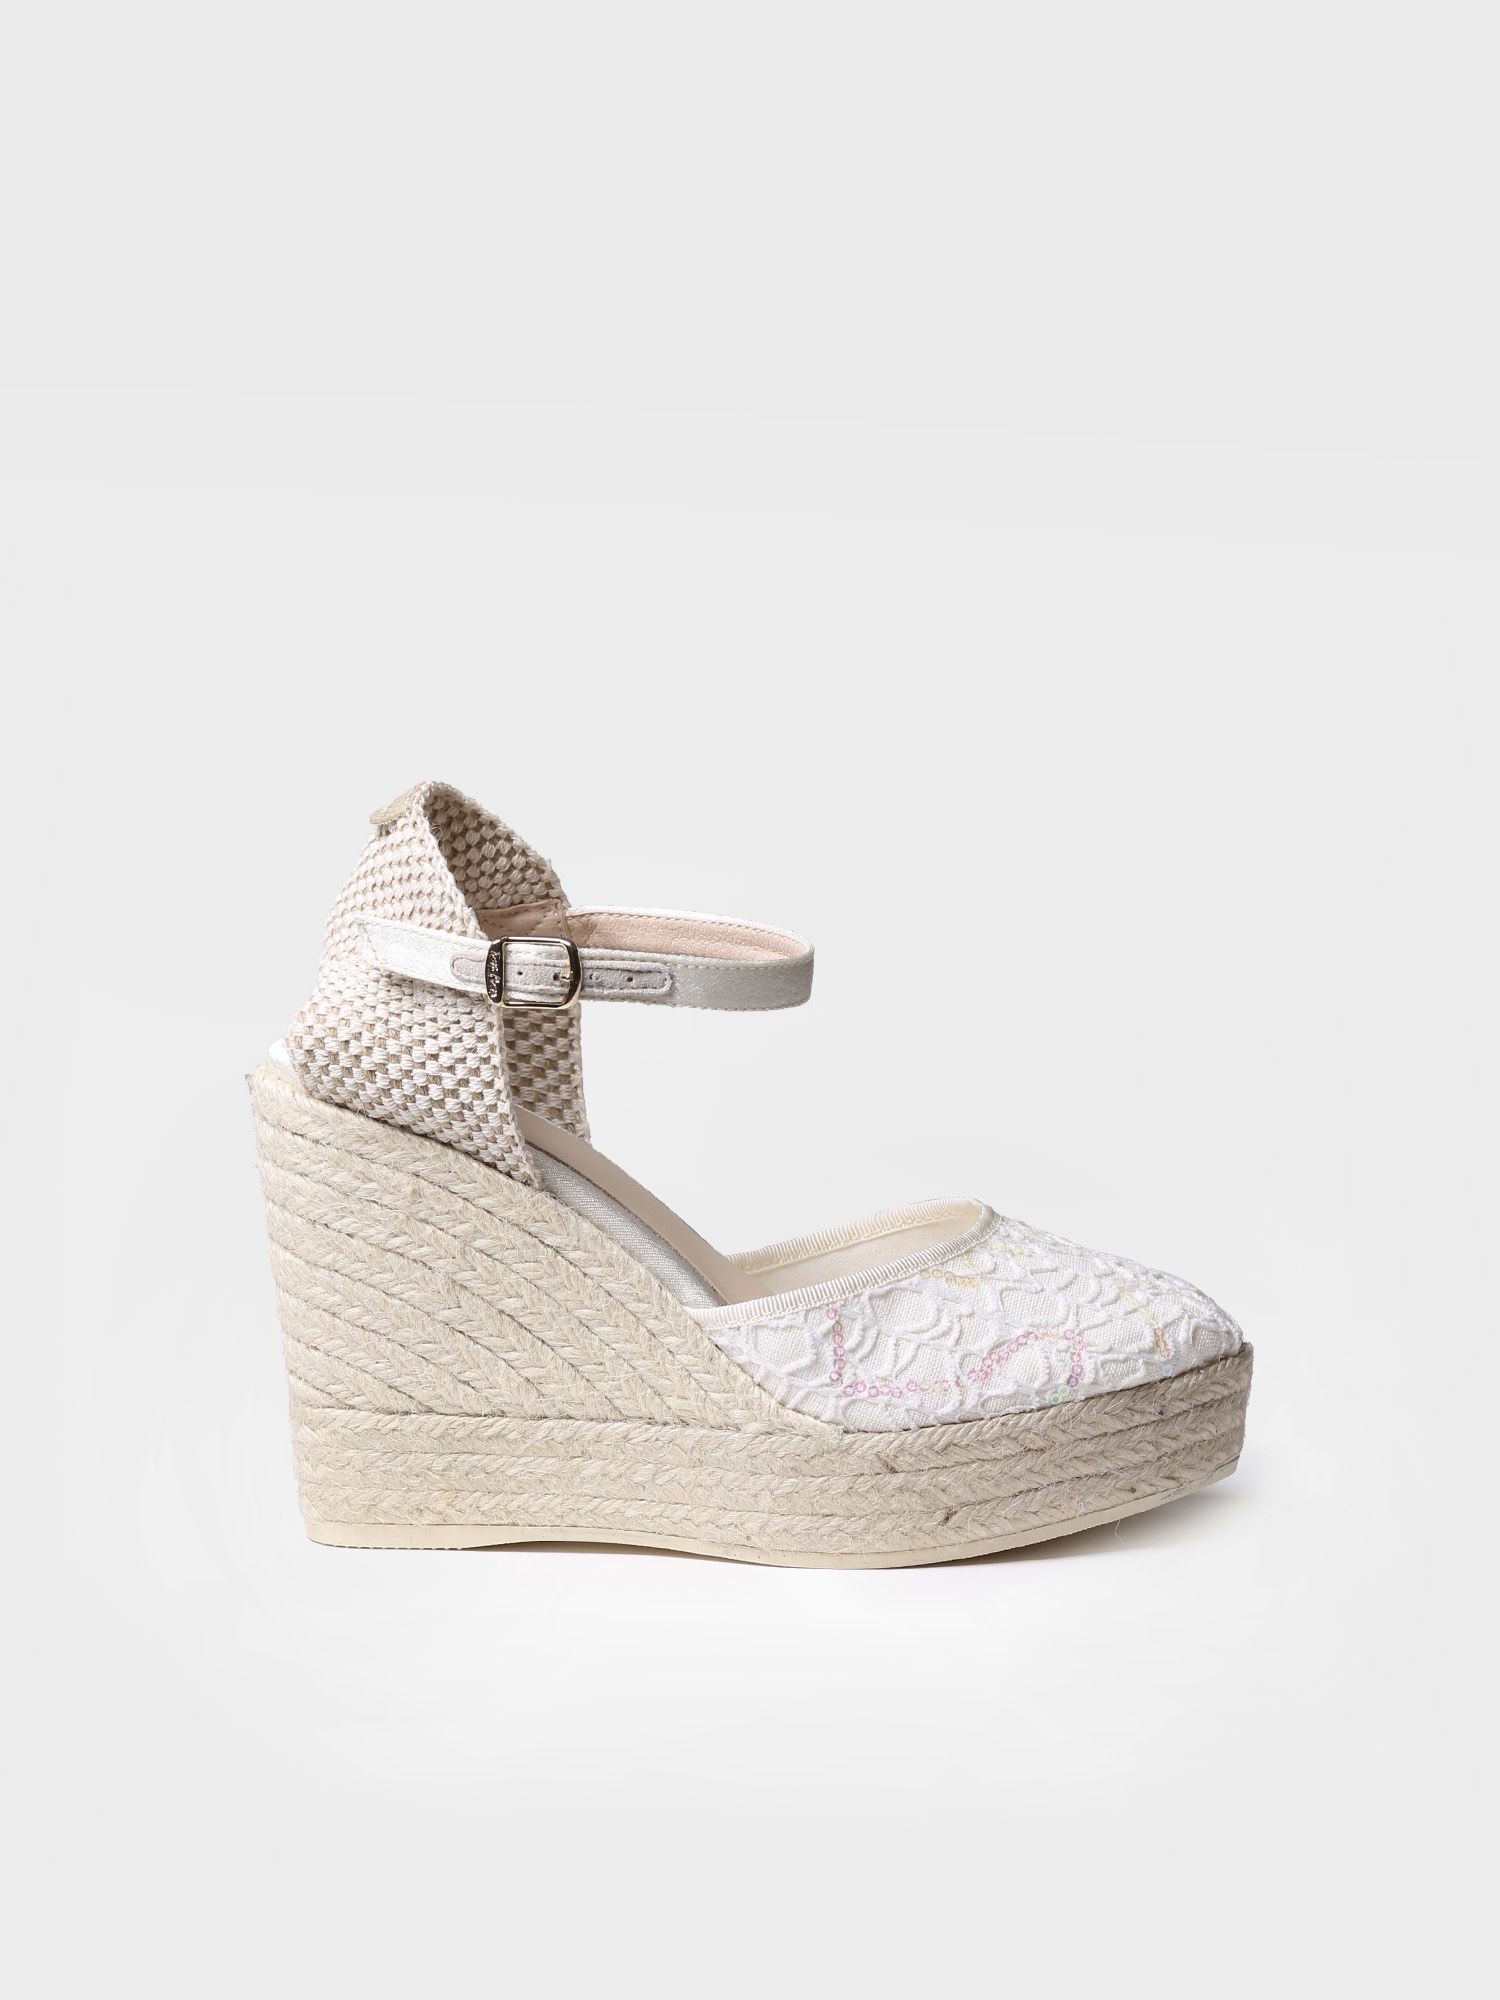 Wedding wedges - PAMELA